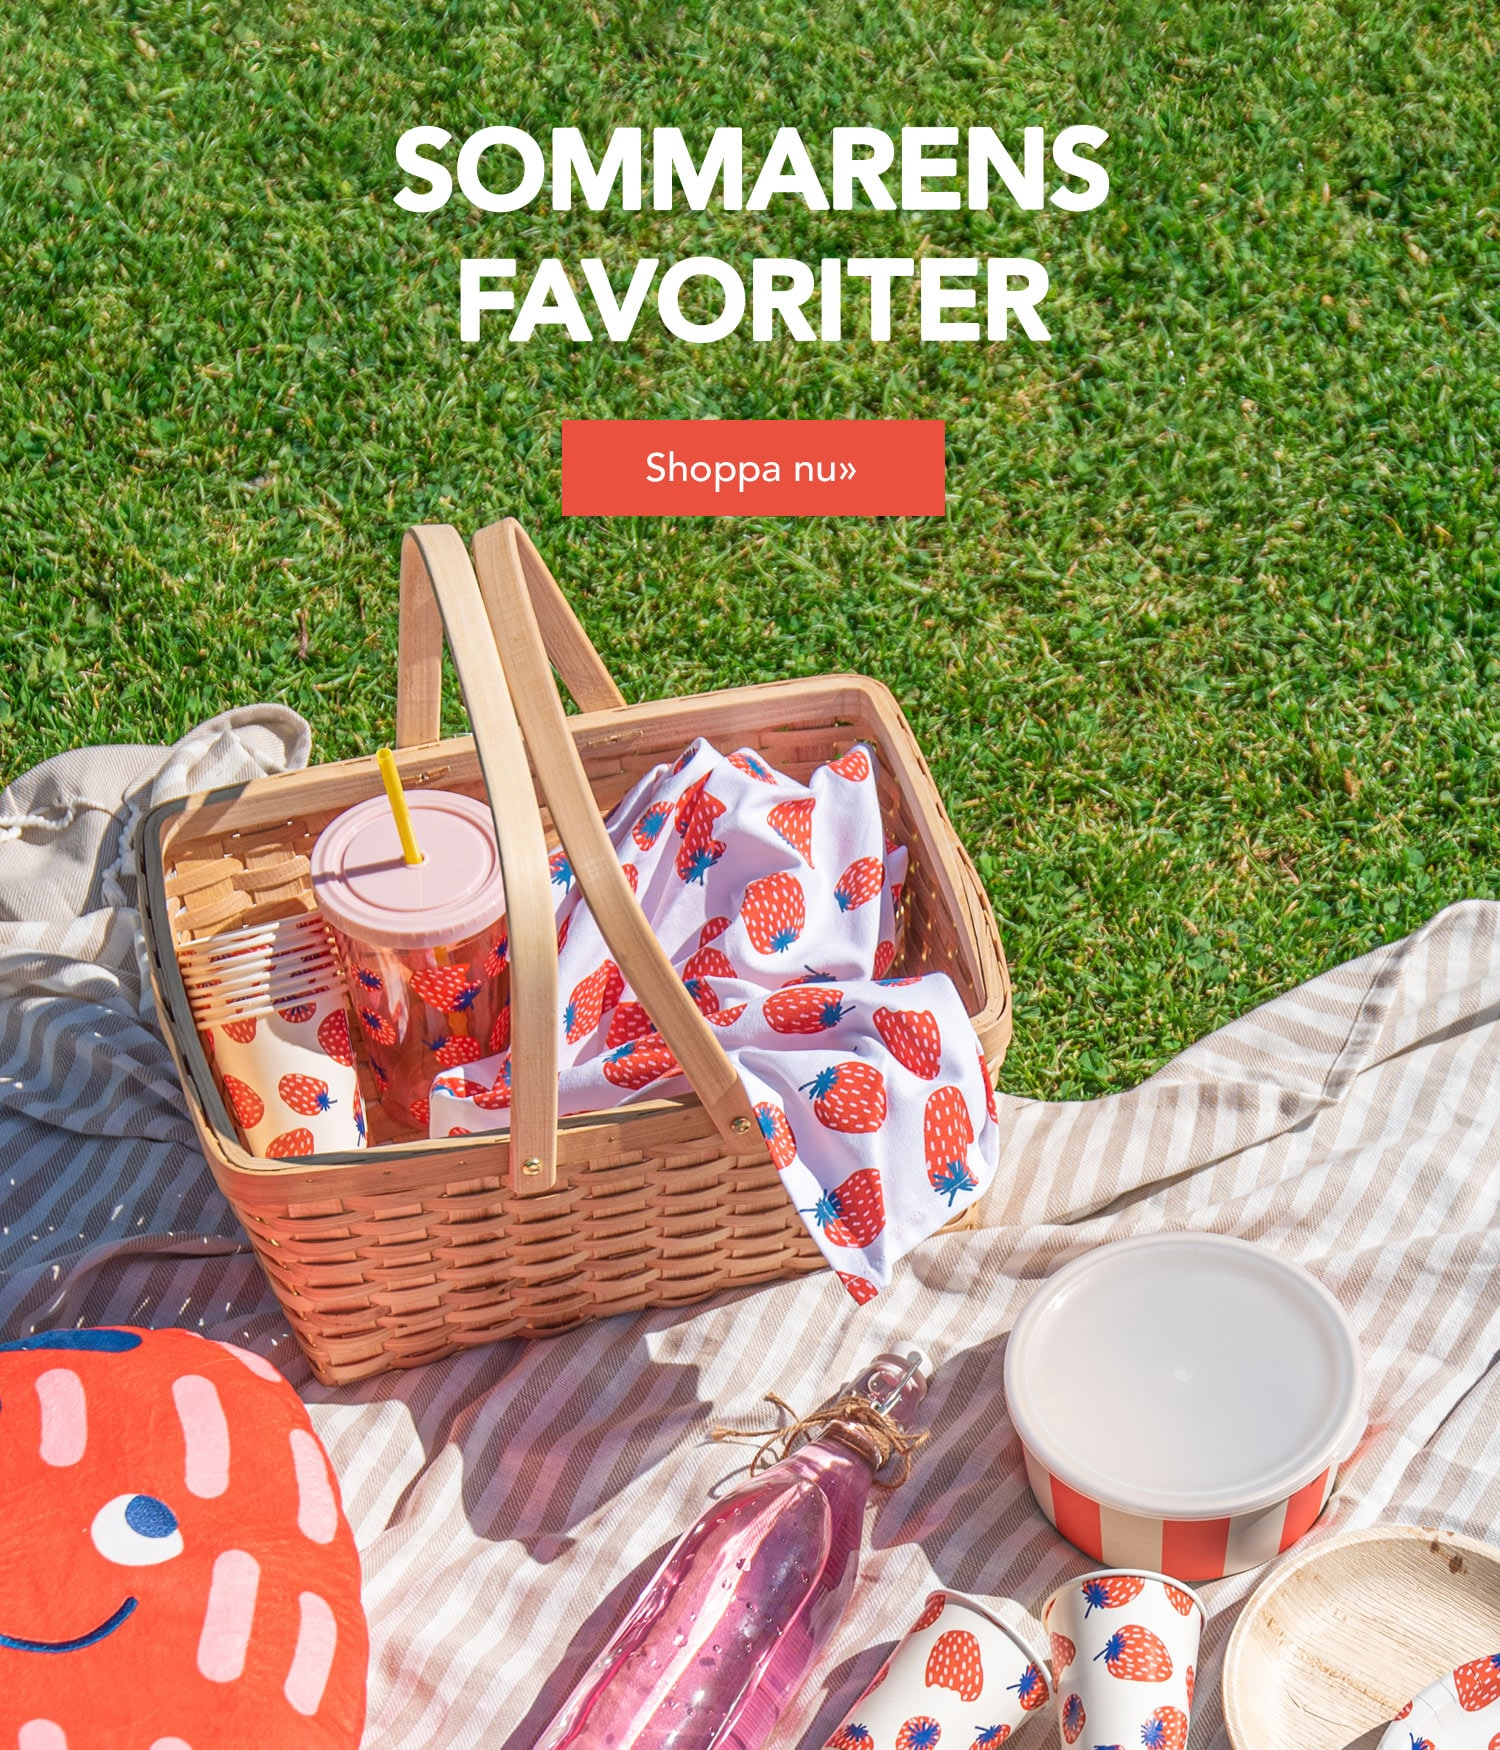 Sommarens favoriter